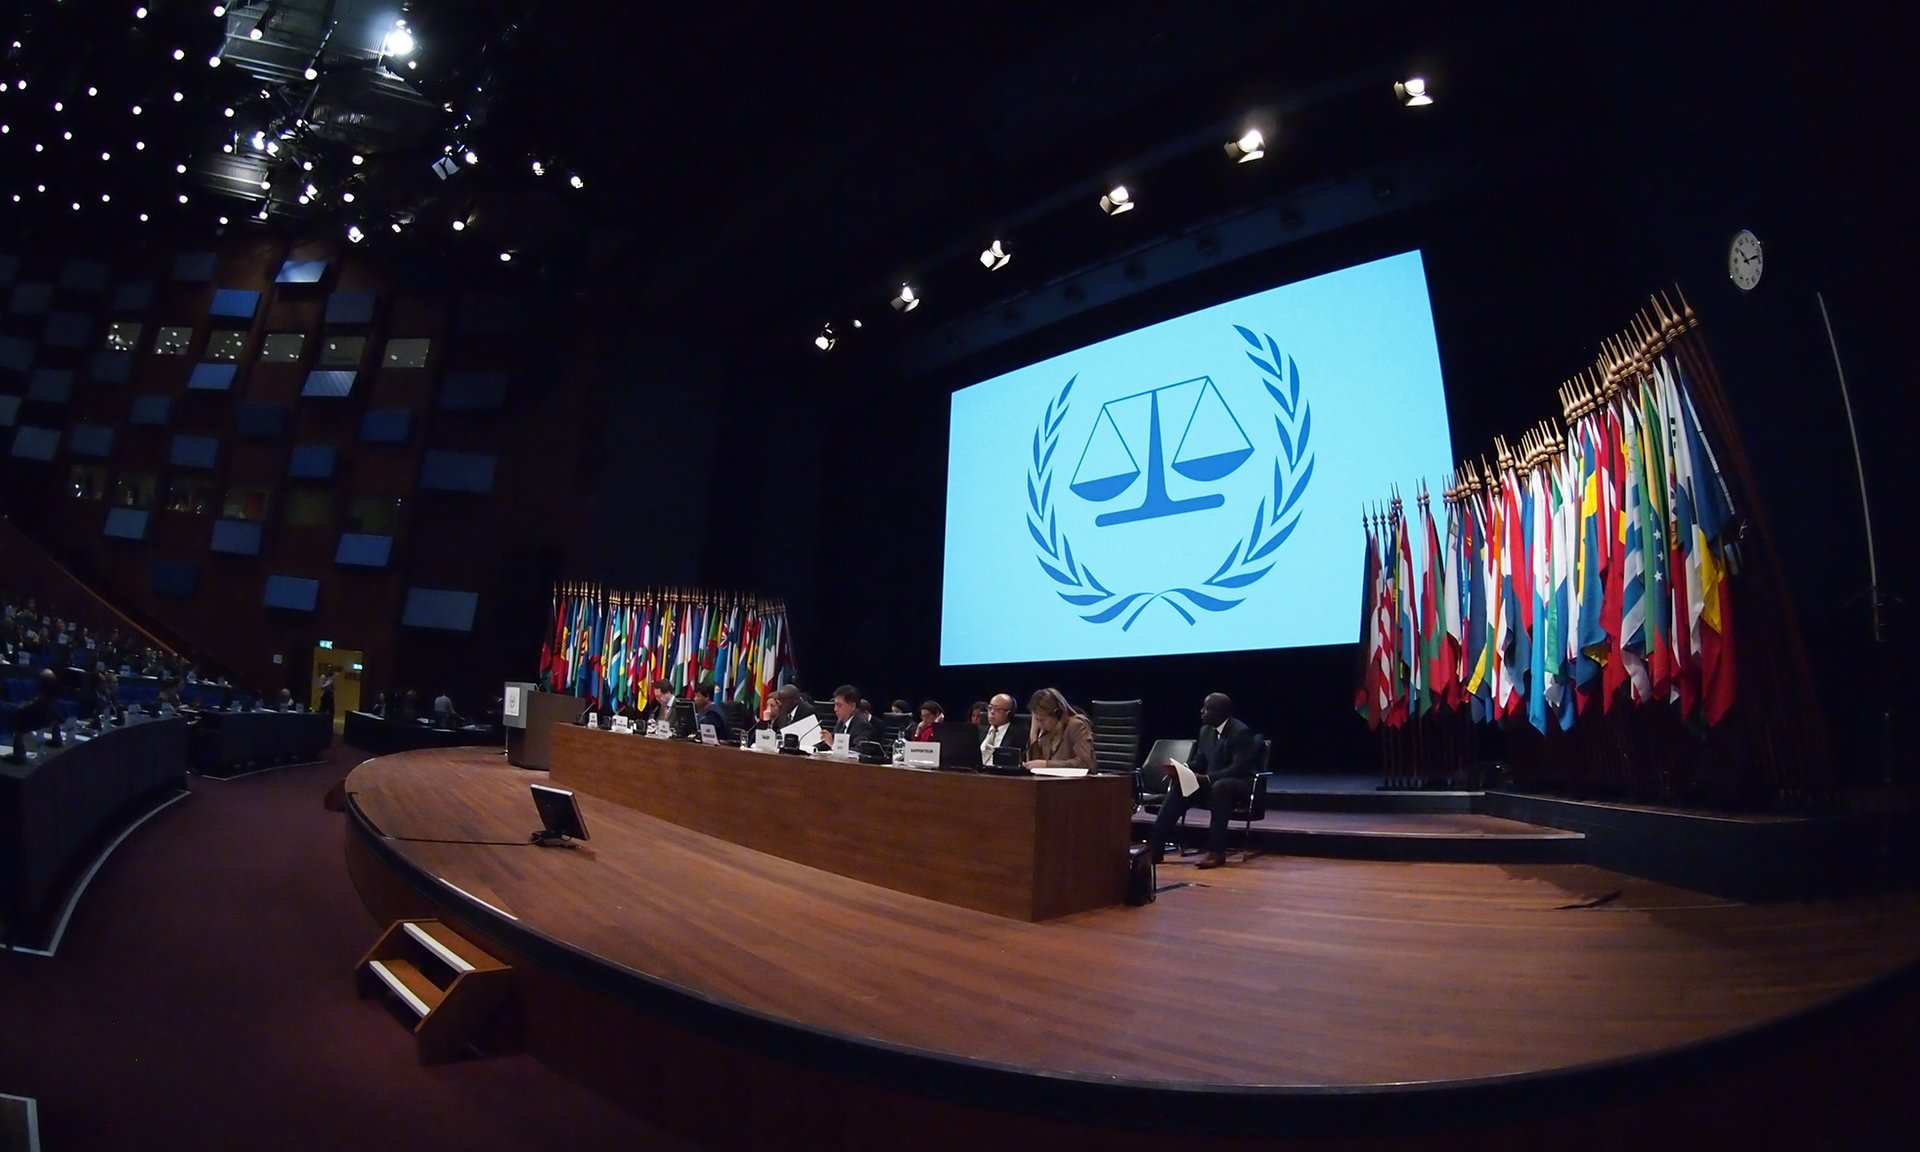 The international criminal court presents its annual report to the Assembly of State Parties to the Rome Statute, in The Hague. Photograph: Yoshihiro Ikeda/Courtesy of ICC